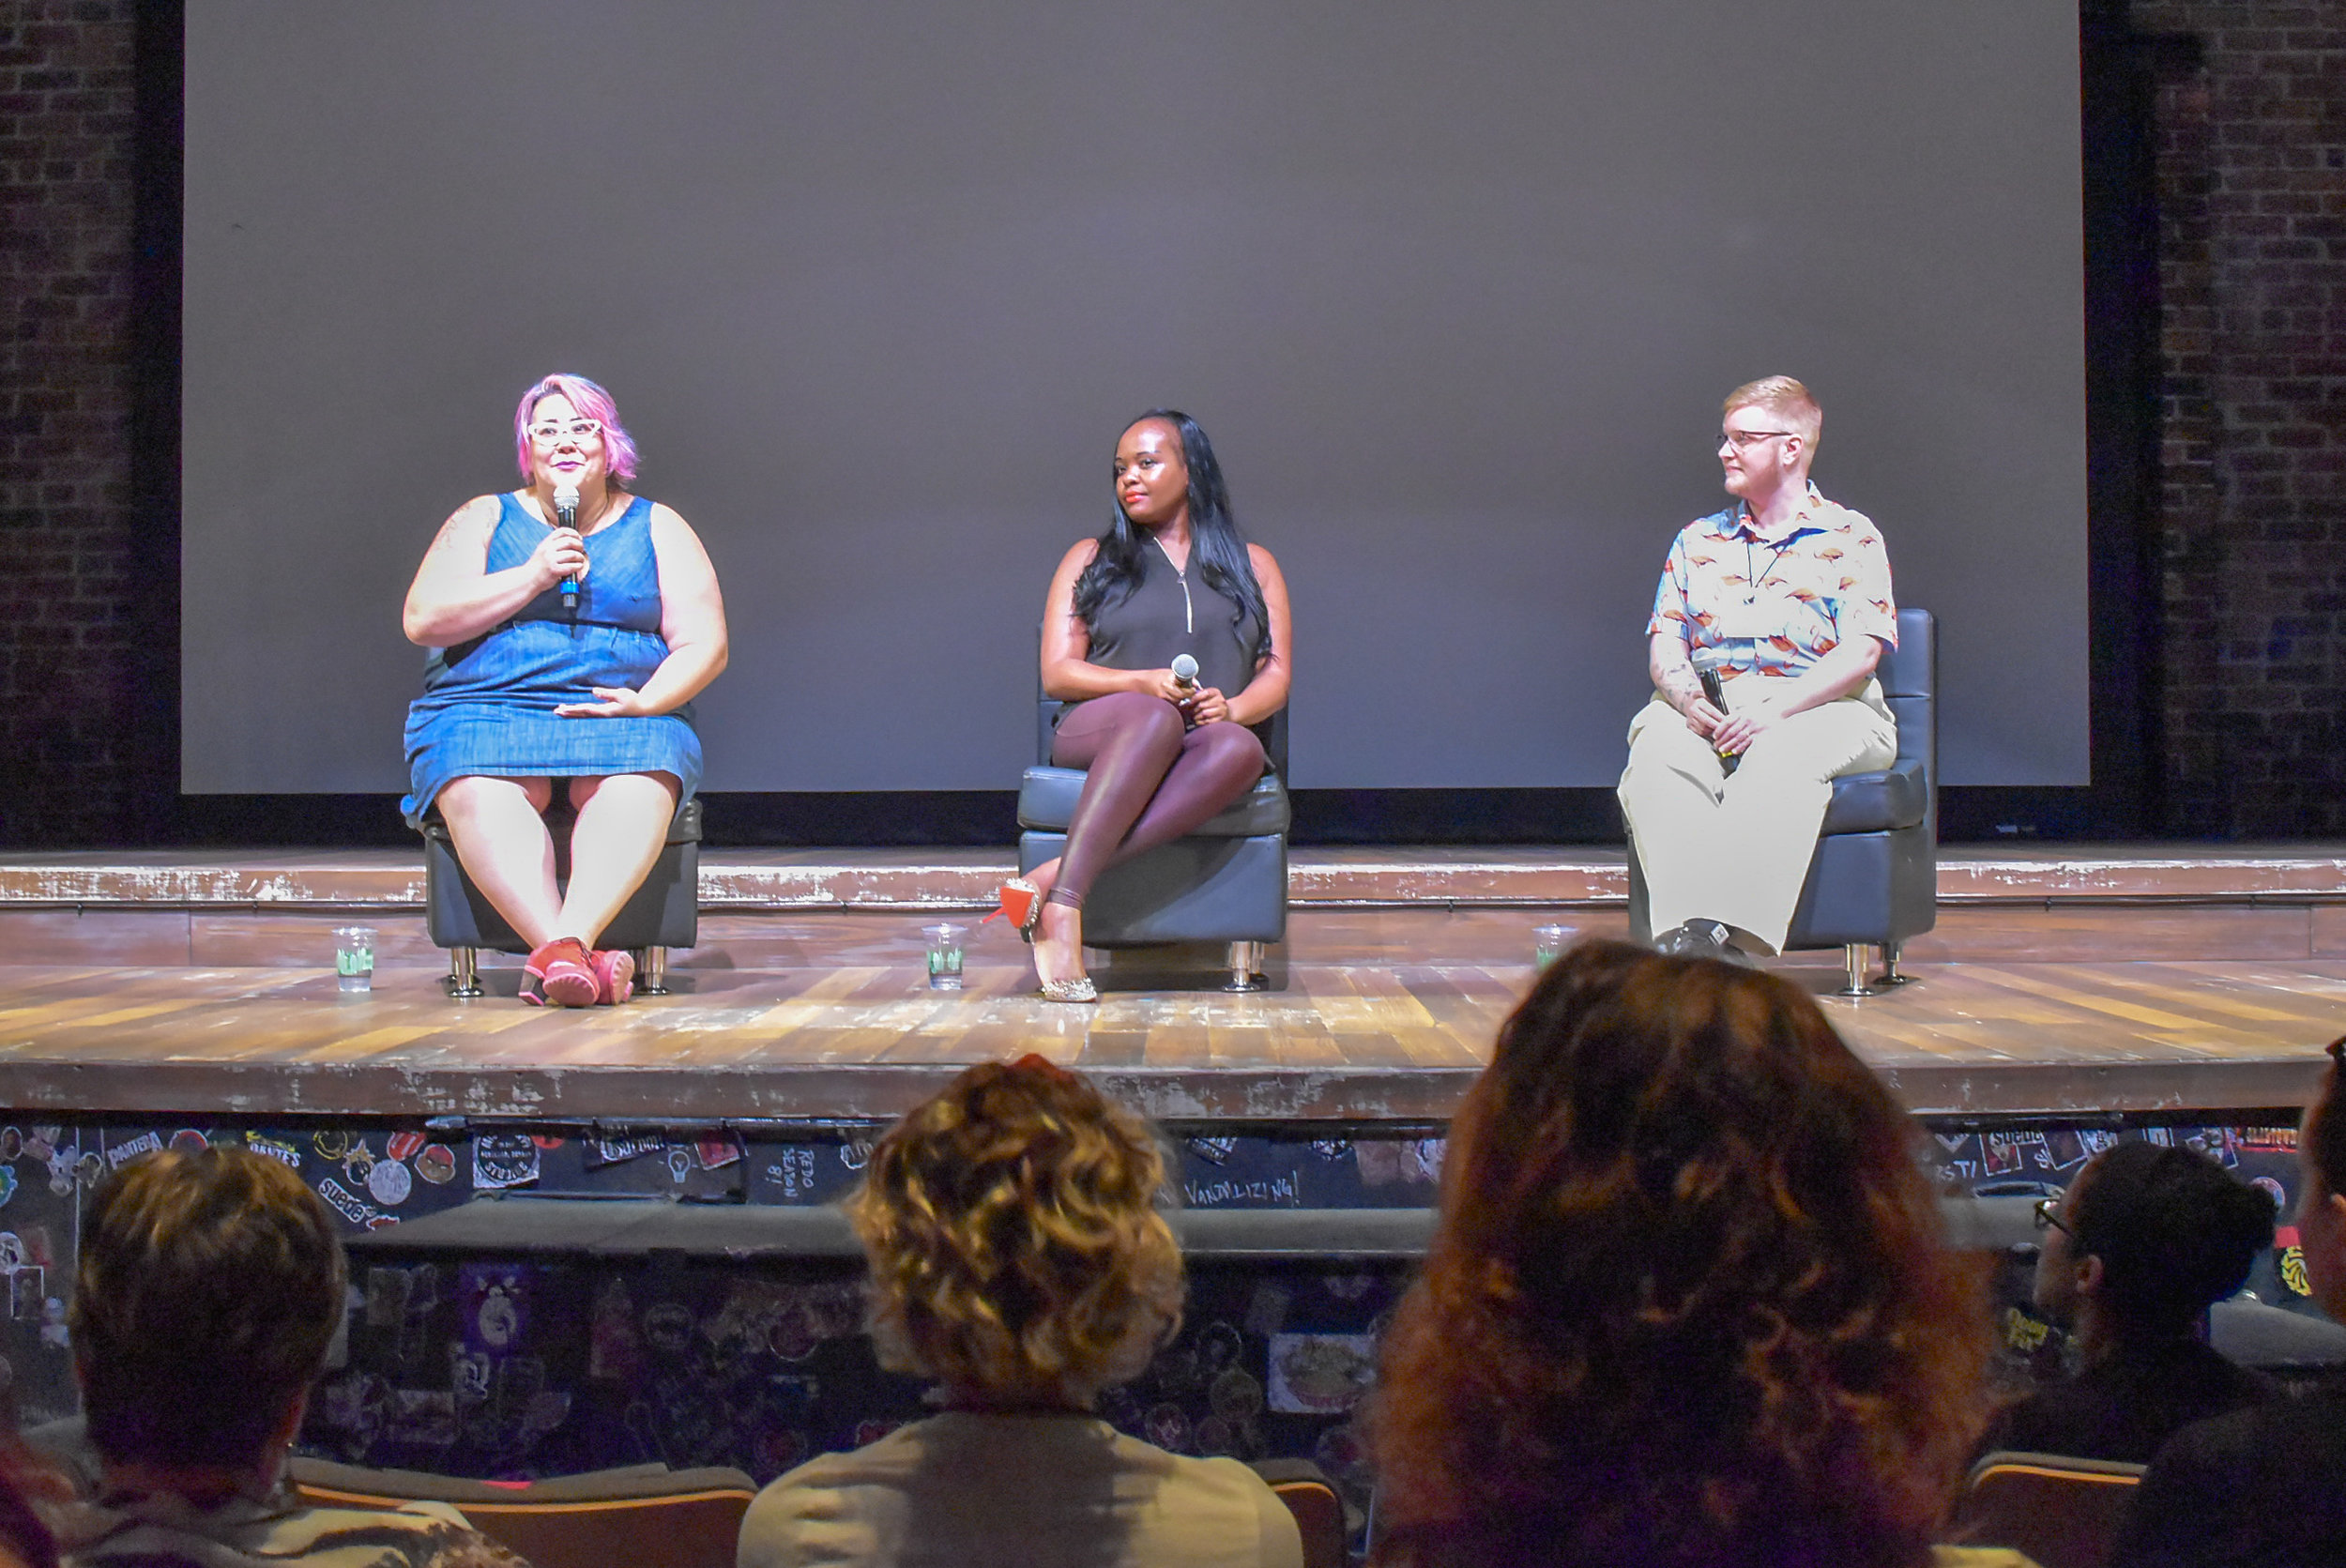 Tara Robertson speaking on stage with Esther John (right) and Sage Sharp (far right)JPG.JPG